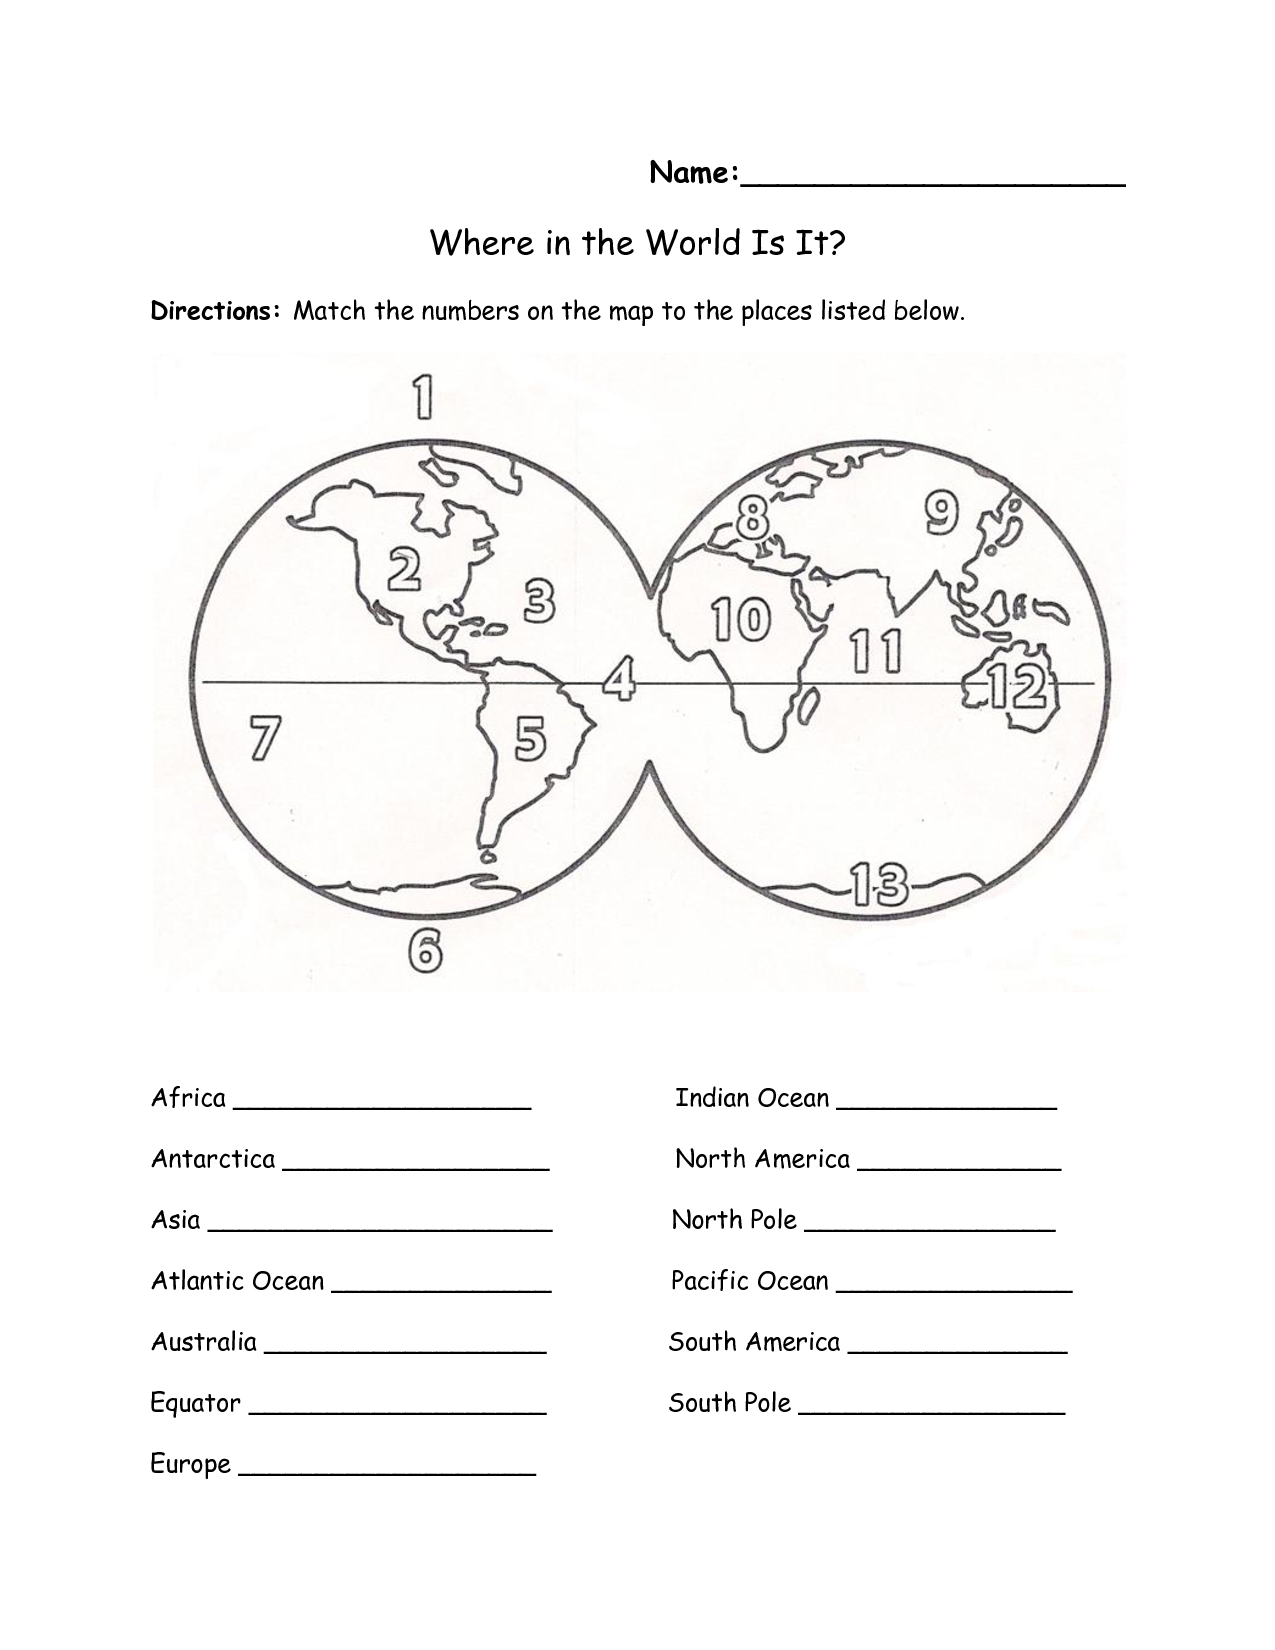 Label Continents Oceans Worksheet Continents And Oceans Worksheet